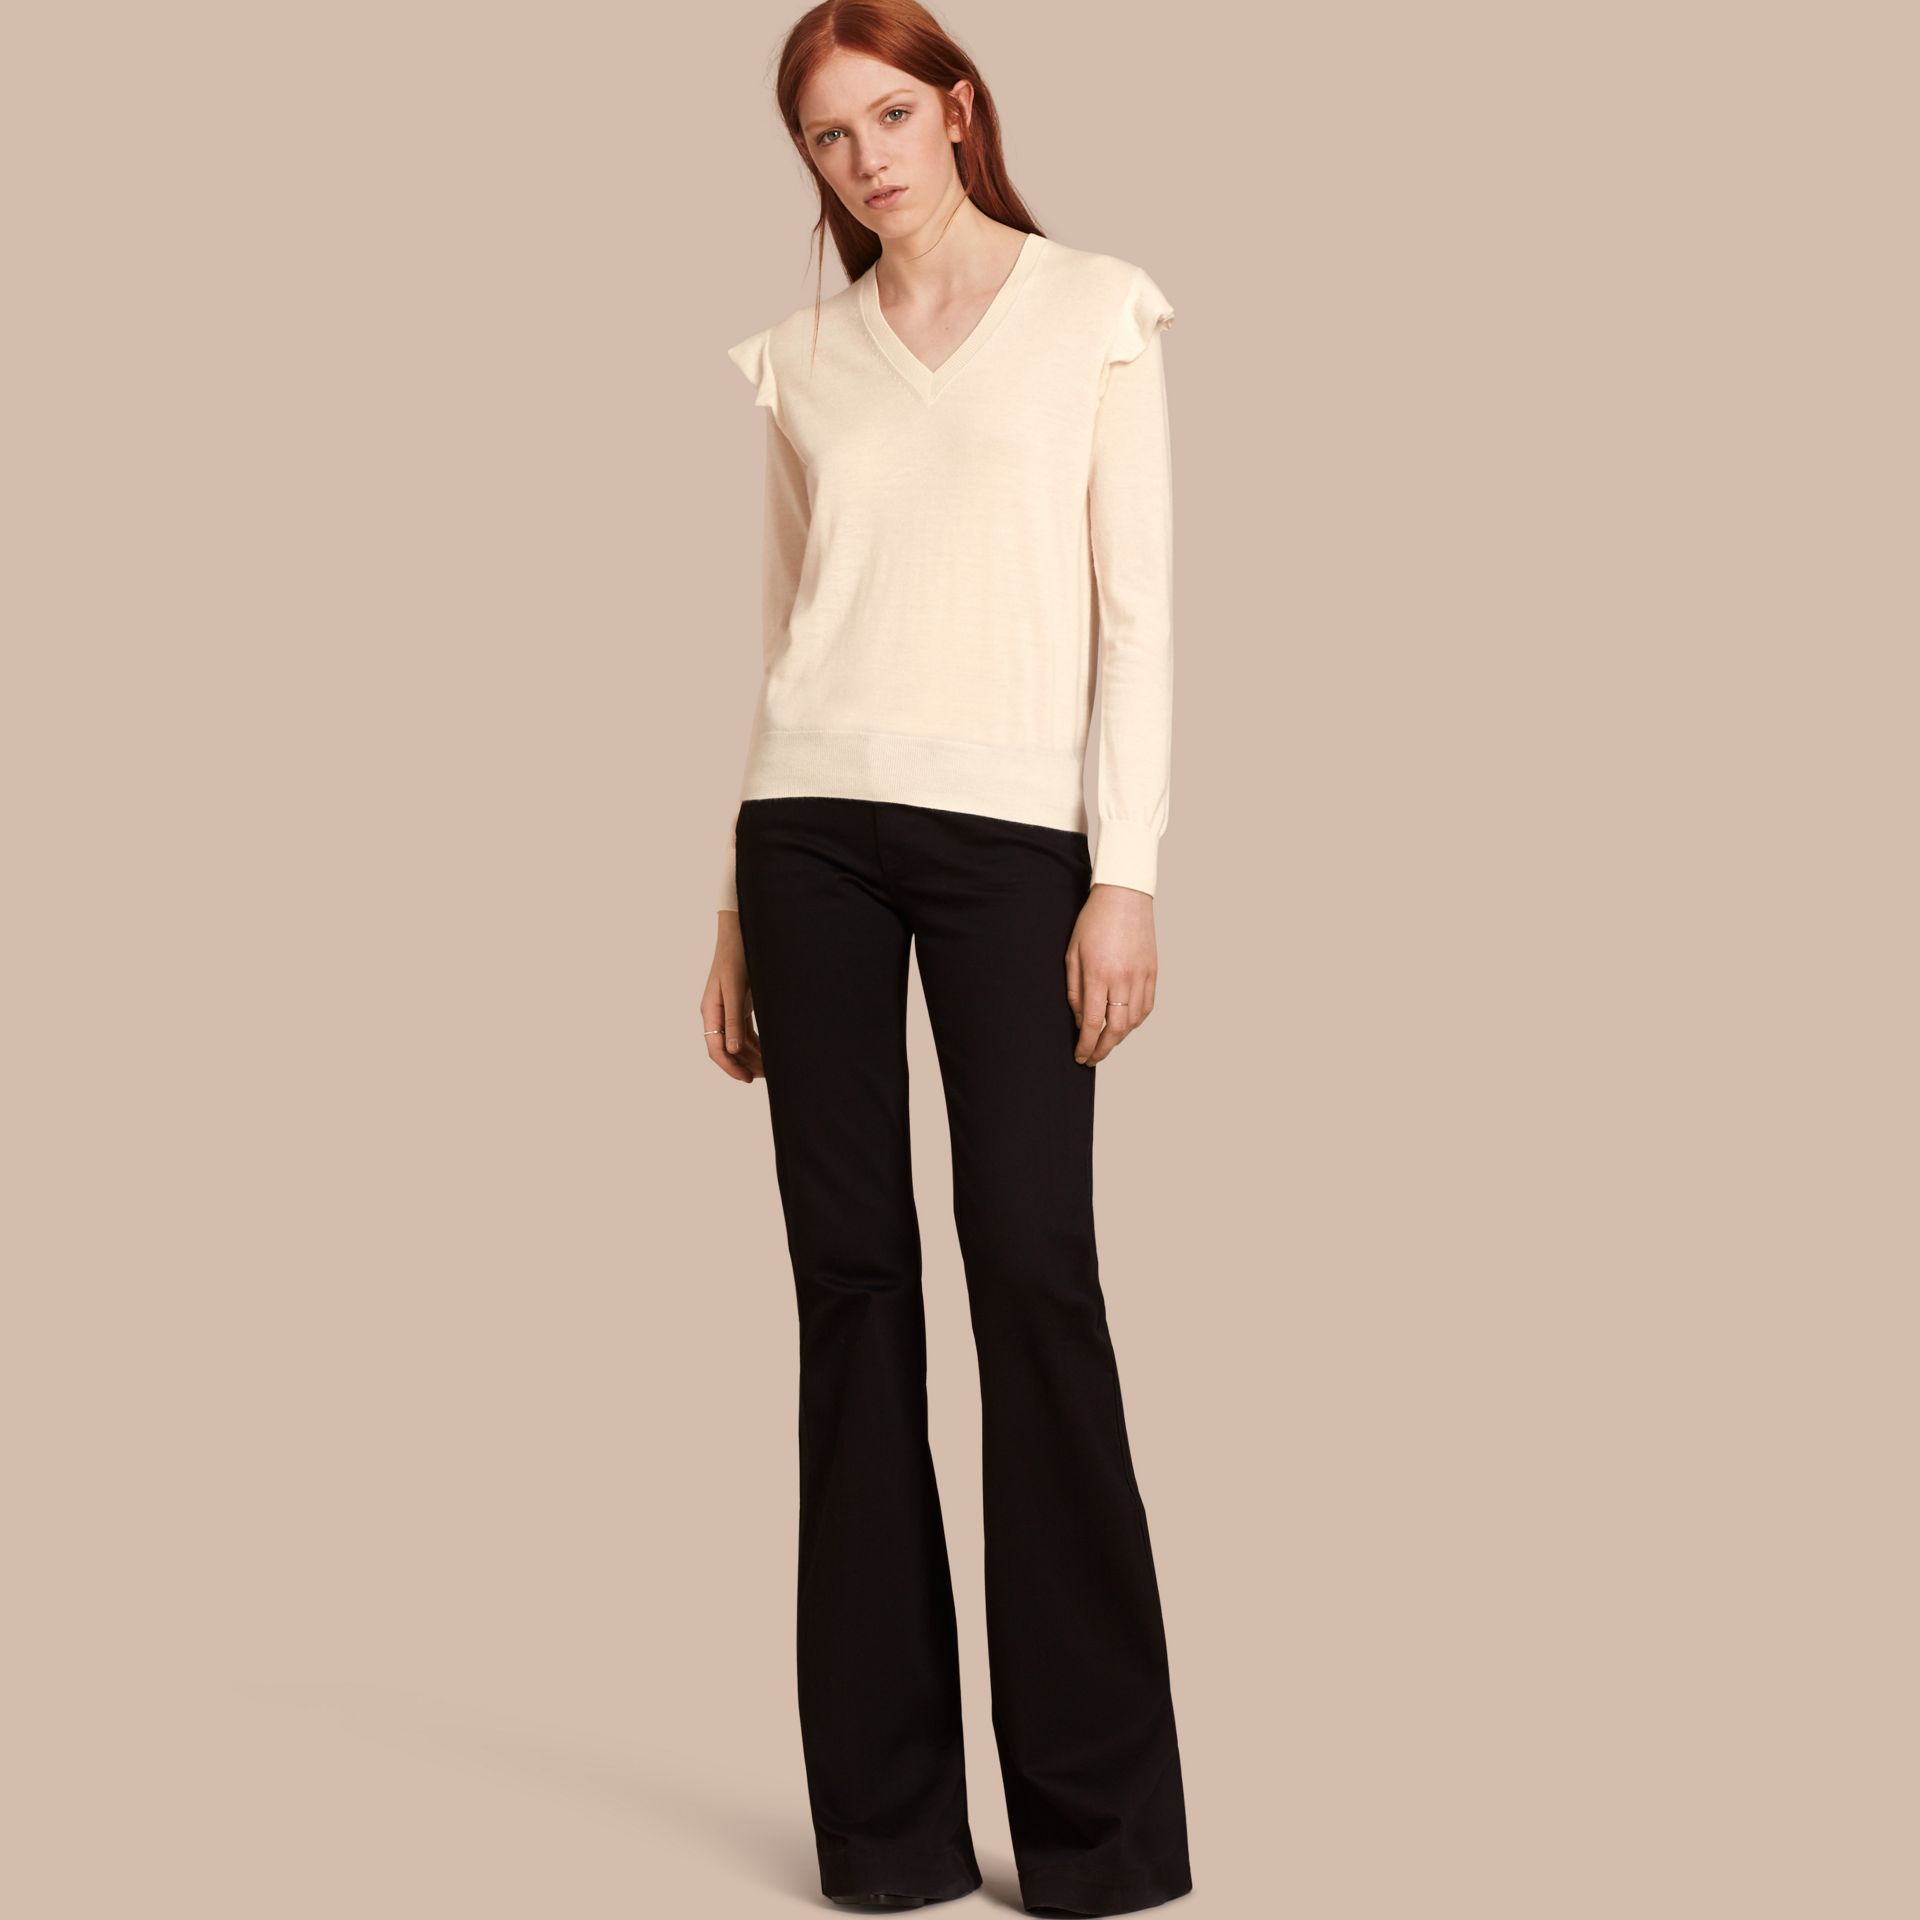 Natural white Cashmere Sweater with Frill Sleeves Natural White - gallery image 1